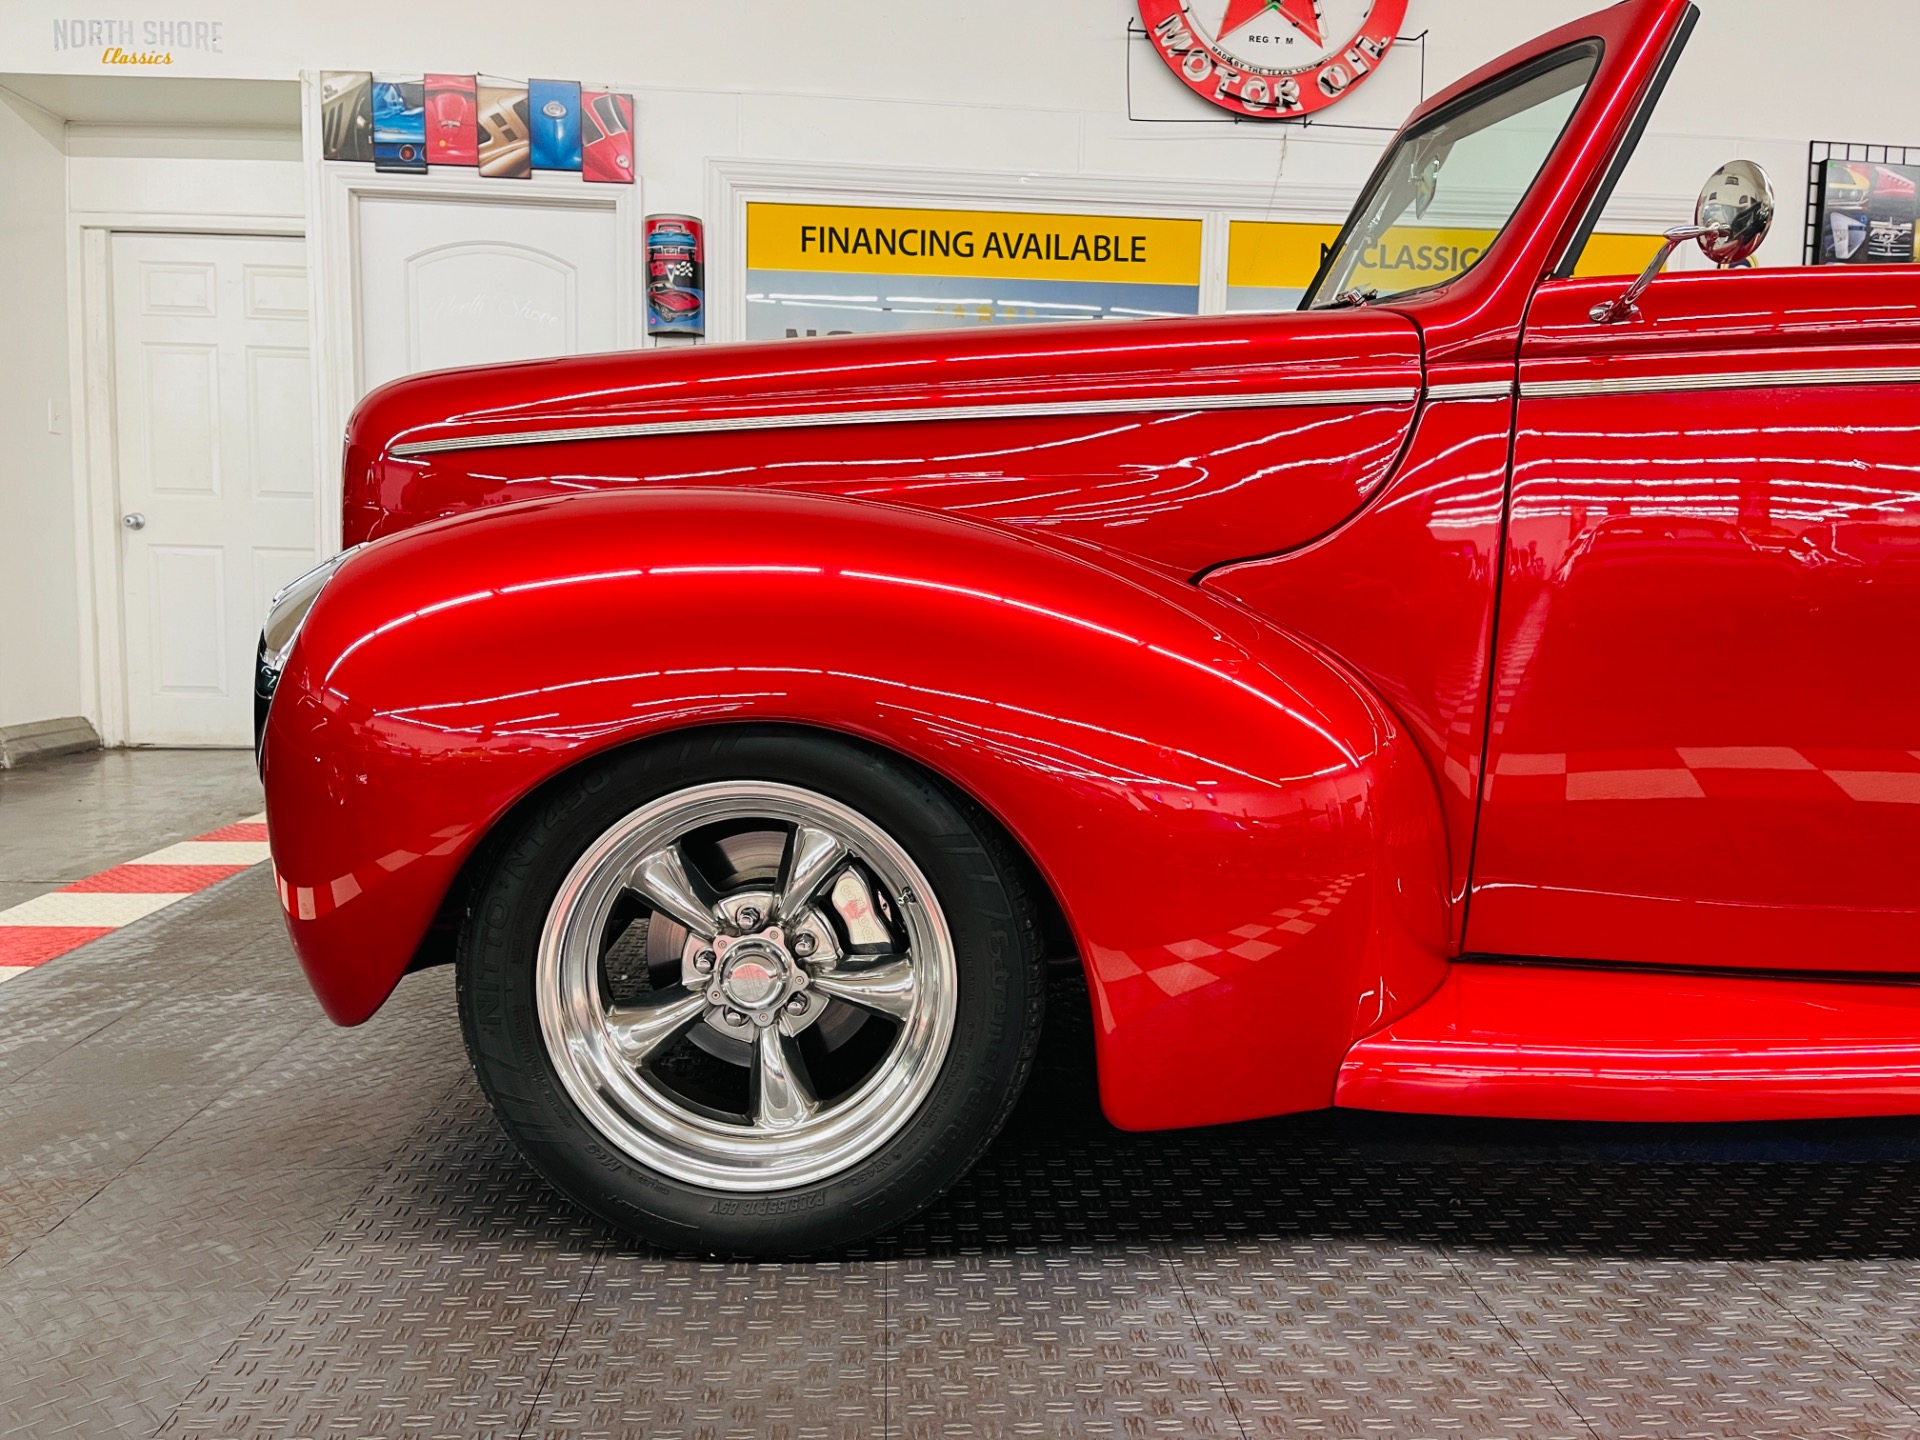 Used 1940 Ford Hot Rod / Street Rod - CONVERTIBLE - LS1 - 4L60E - ROADSTER SHOP FRAME - SEE VIDEO - | Mundelein, IL